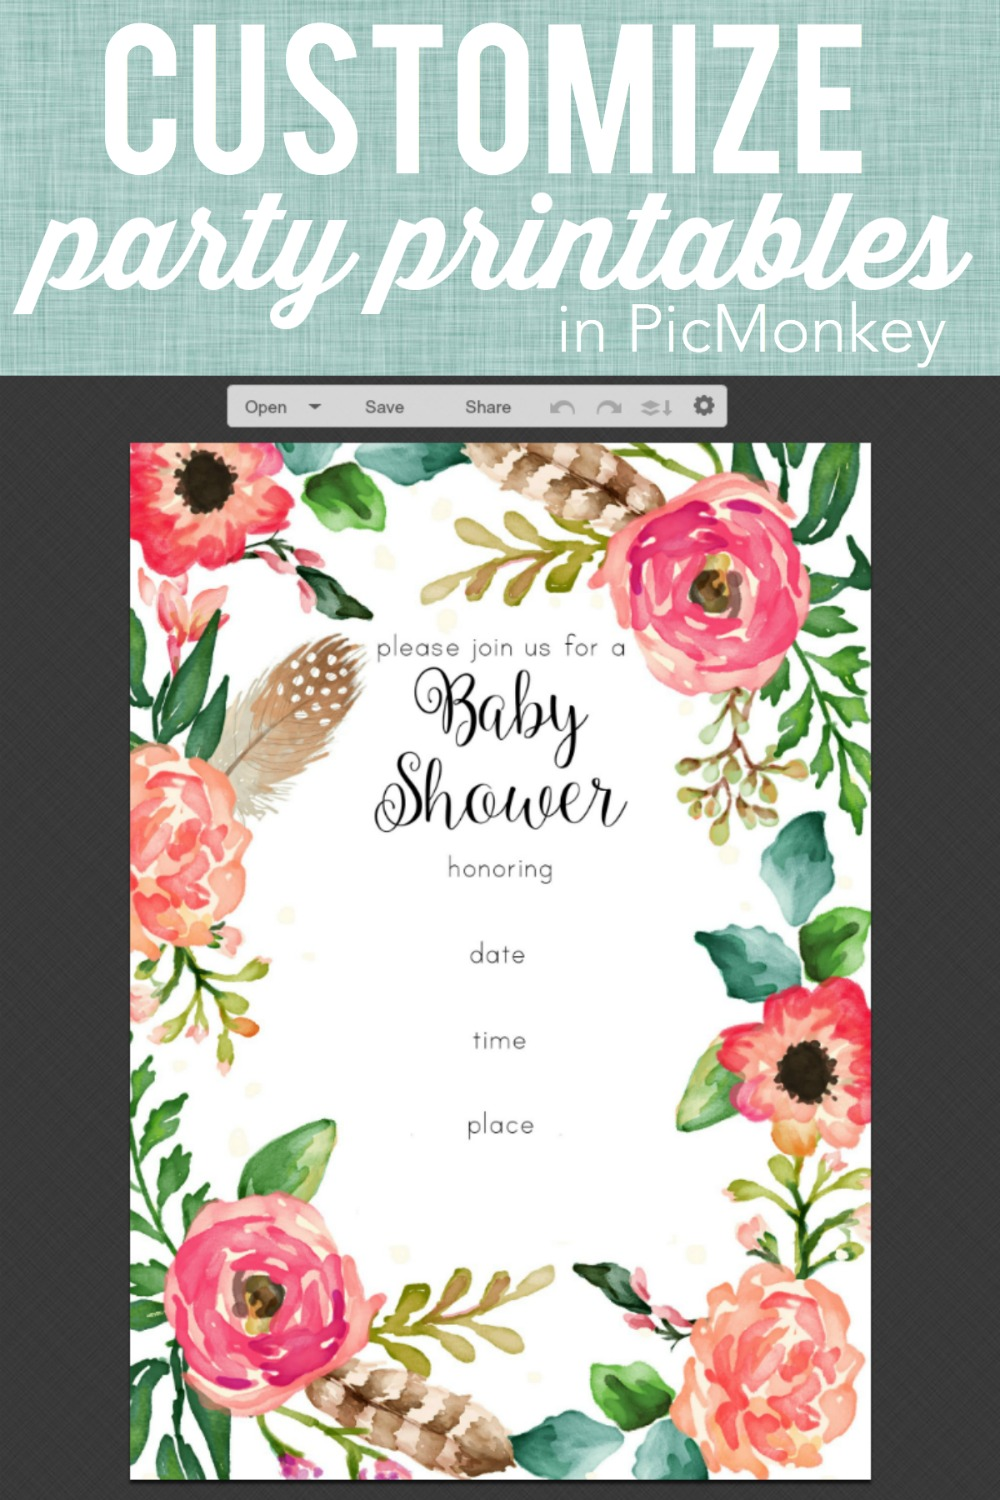 Customizable Party Invitations REASONS TO SKIP THE HOUSEWORK – Customize Party Invitations